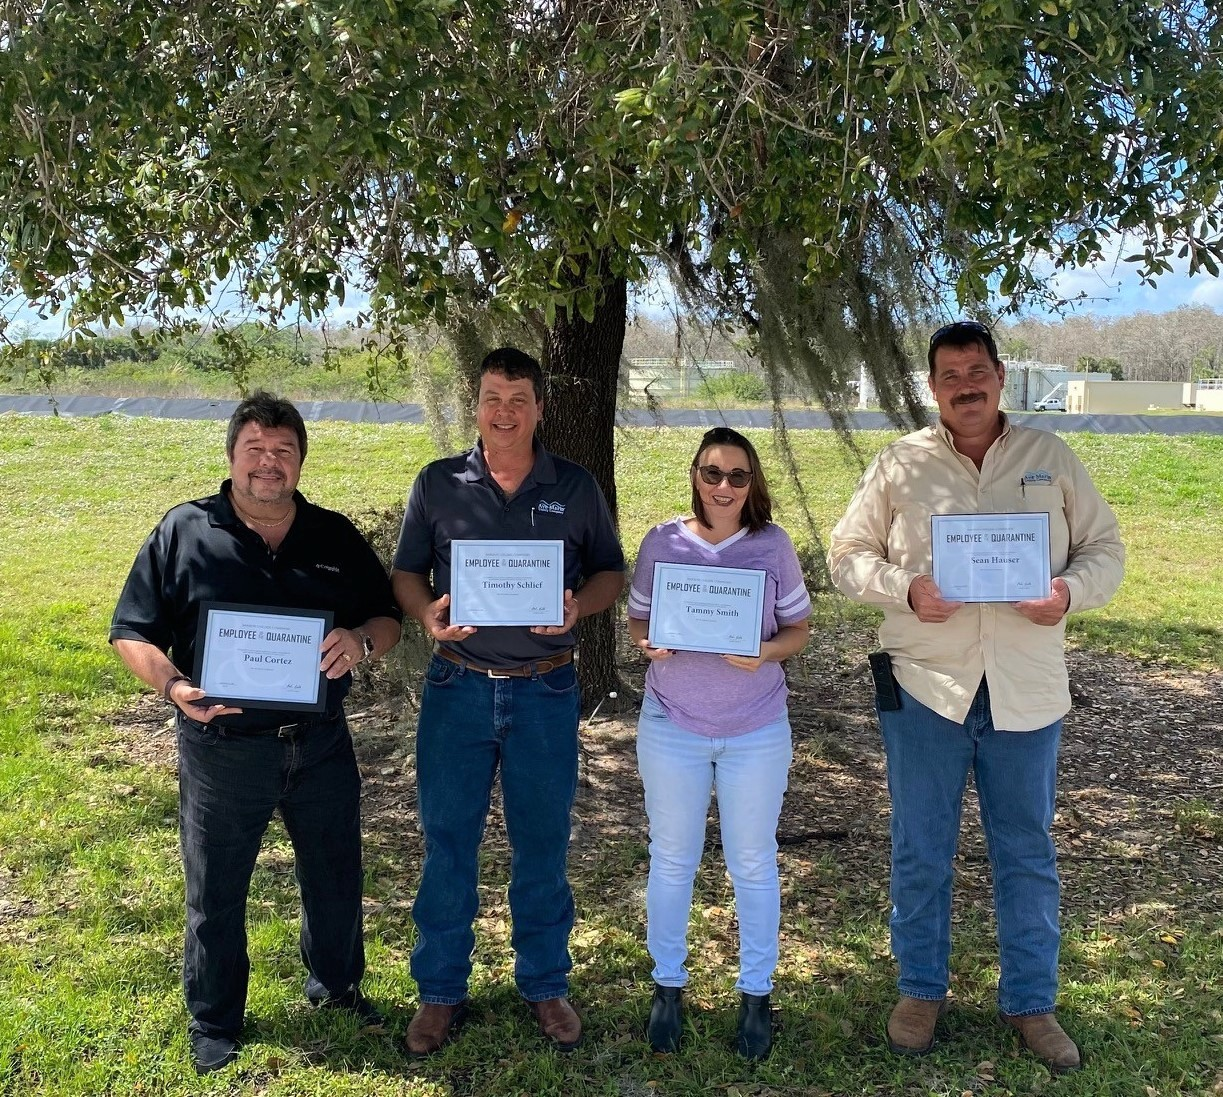 Four people standing holding certificates outdoors